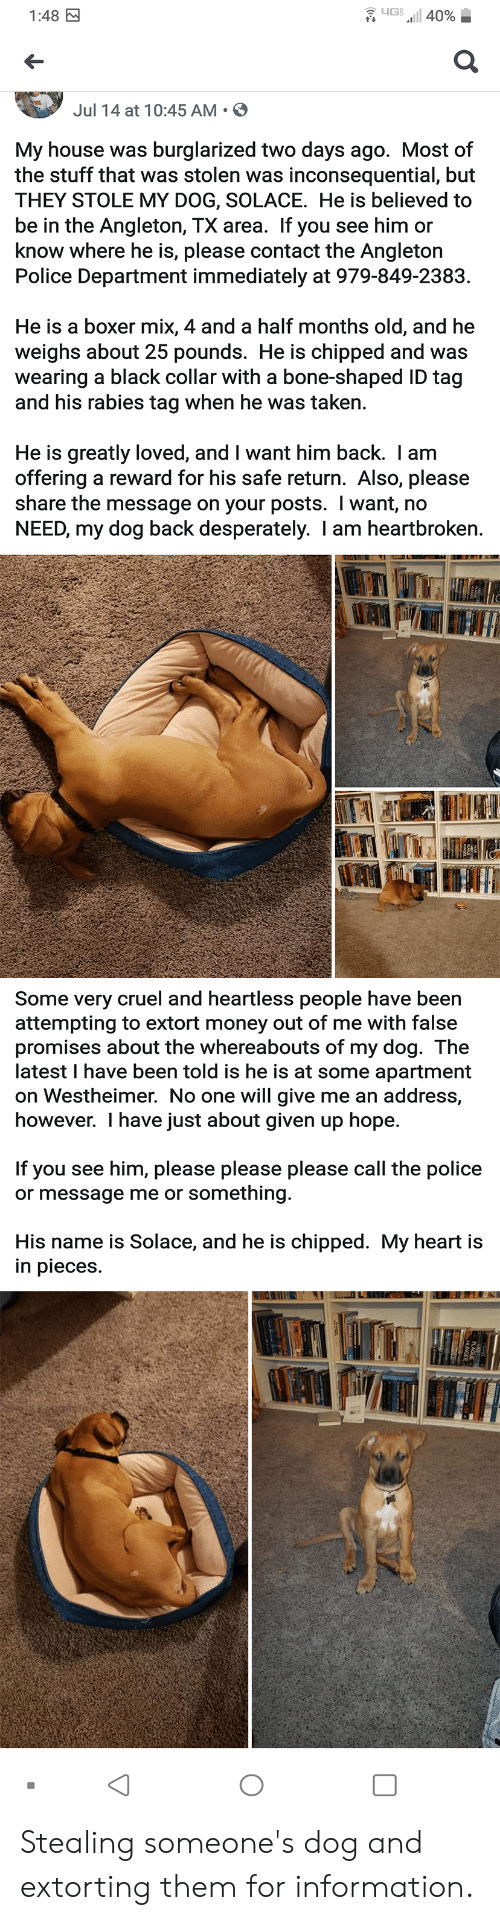 Money, My House, and Police: yG  1:48 M  a40%  Jul 14 at 10:45 AM  My house was  the stuff that was stolen was  burglarized two days ago. Most of  inconsequential, but  THEY STOLE MY DOG, SOLACE. He is believed to  be in the Angleton, TX area. If you see him or  know where he is, please contact the Angleton  Police Department immediately at 979-849-2383  He is a boxer mix, 4 and a half months old, and he  weighs about 25 pounds. He is chipped and was  wearing a black collar with a bone-shaped ID tag  and his rabies tag when he was taken.  He is greatly loved, and I want him back. I am  offering a reward for his safe return. Also, please  share the message on your posts. I want, no  NEED, my dog back desperately. I am heartbroken.  Some very cruel and heartless people have been  attempting to extort money out of me with false  promises about the whereabouts of my dog. The  latest I have been told is he is at some apartment  on Westheimer. No one will give me  however. I have just about given up hope  an address,  If you see him, please please please call the police  something  or message me or  His name is Solace, and he is chipped. My heart is  in pieces Stealing someone's dog and extorting them for information.